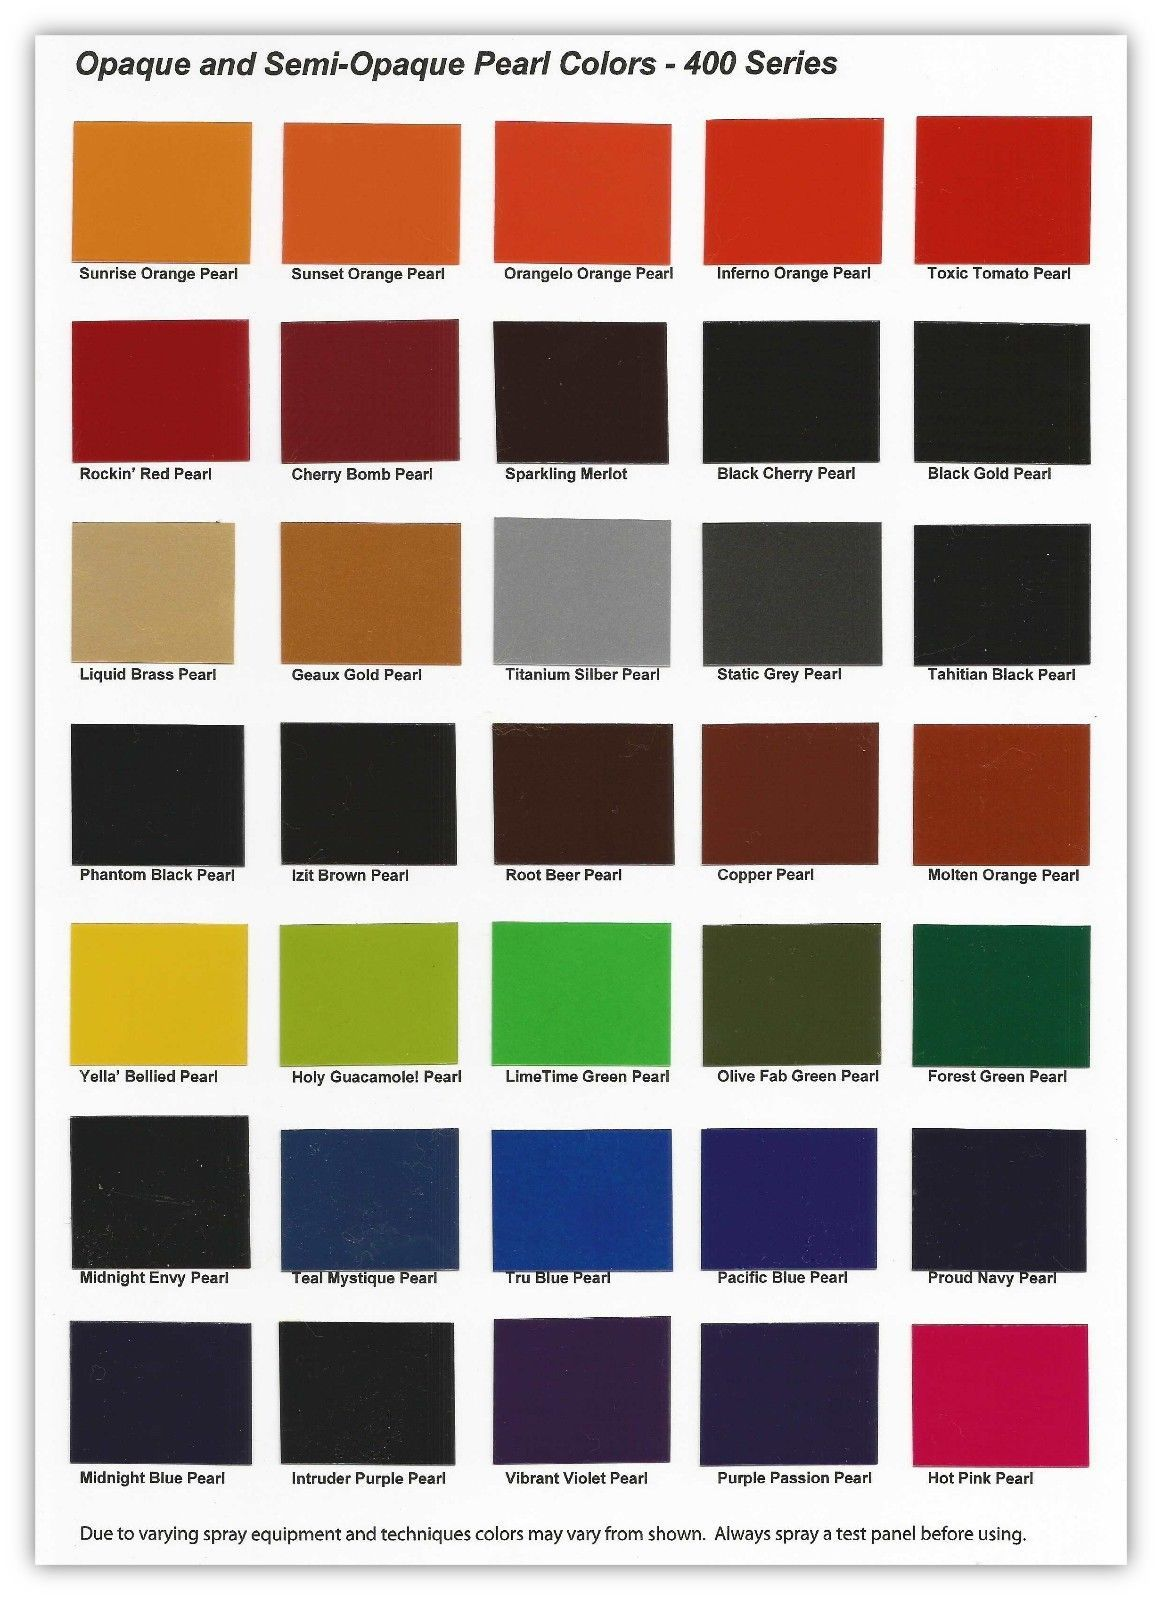 Urekem 400 Series Color Chart Color Card Of Opaque And Semi Opaque Pearls Ebay Car Painting Color Card Blue Paint Colors